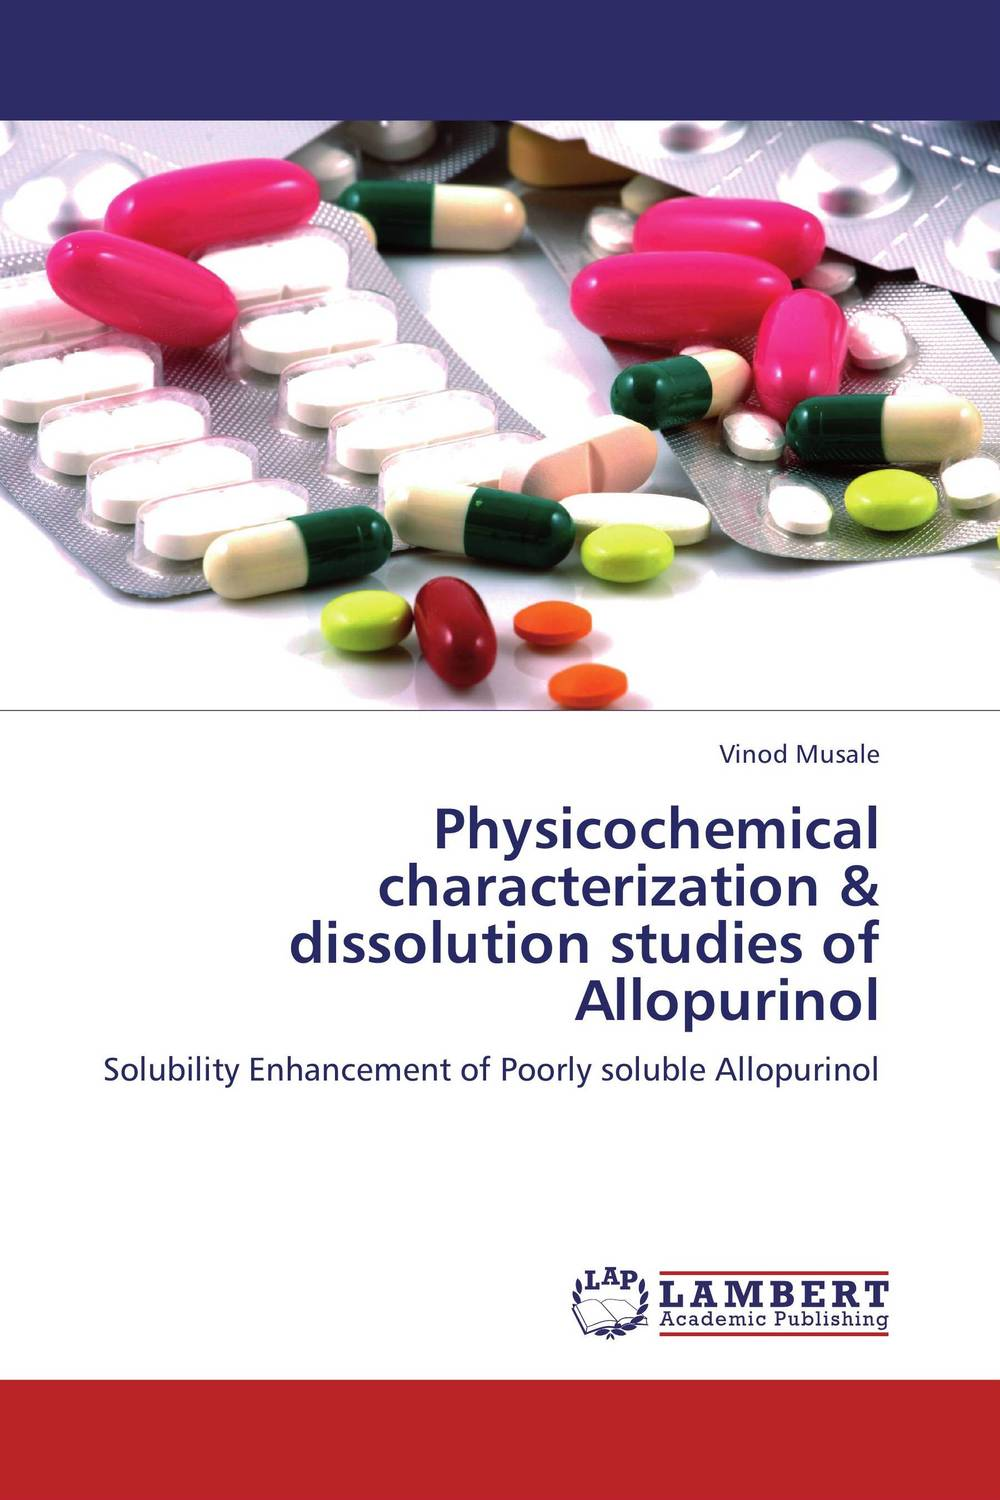 Physicochemical characterization & dissolution studies of Allopurinol alex avdeef absorption and drug development solubility permeability and charge state